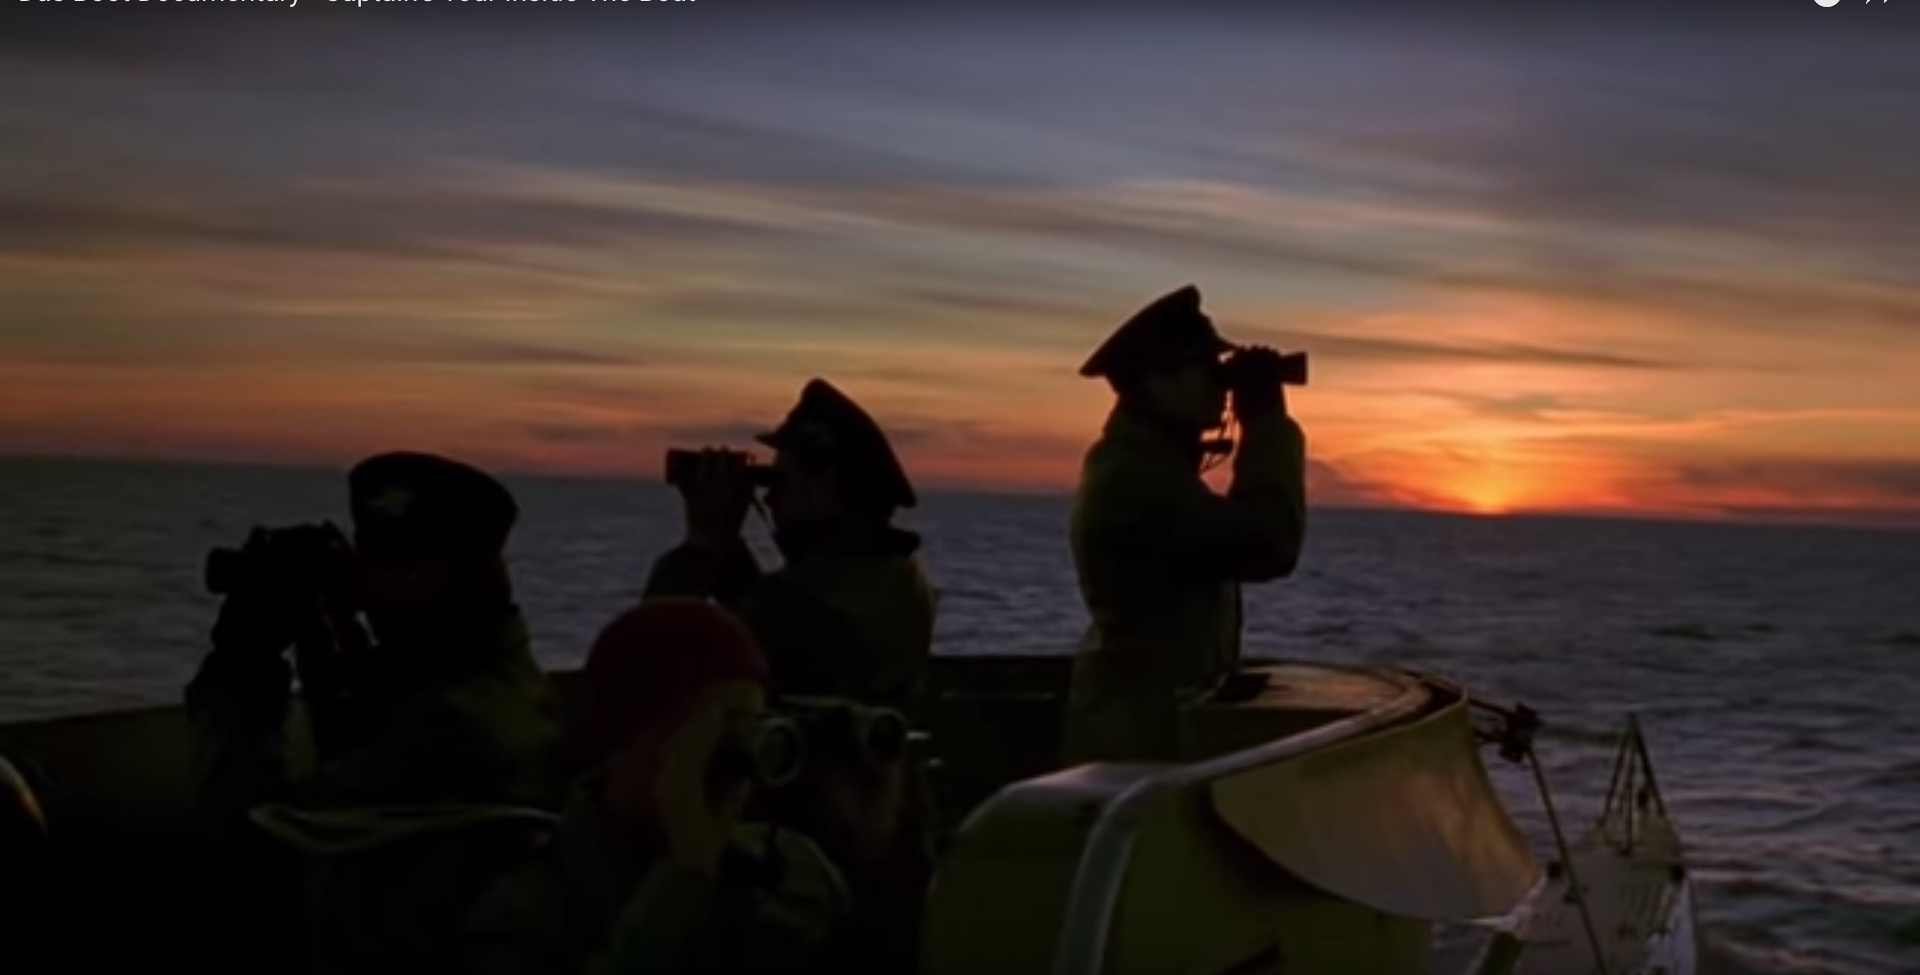 Das Boot Documentary Takes You Inside The U-96 Submarine | IndieWire